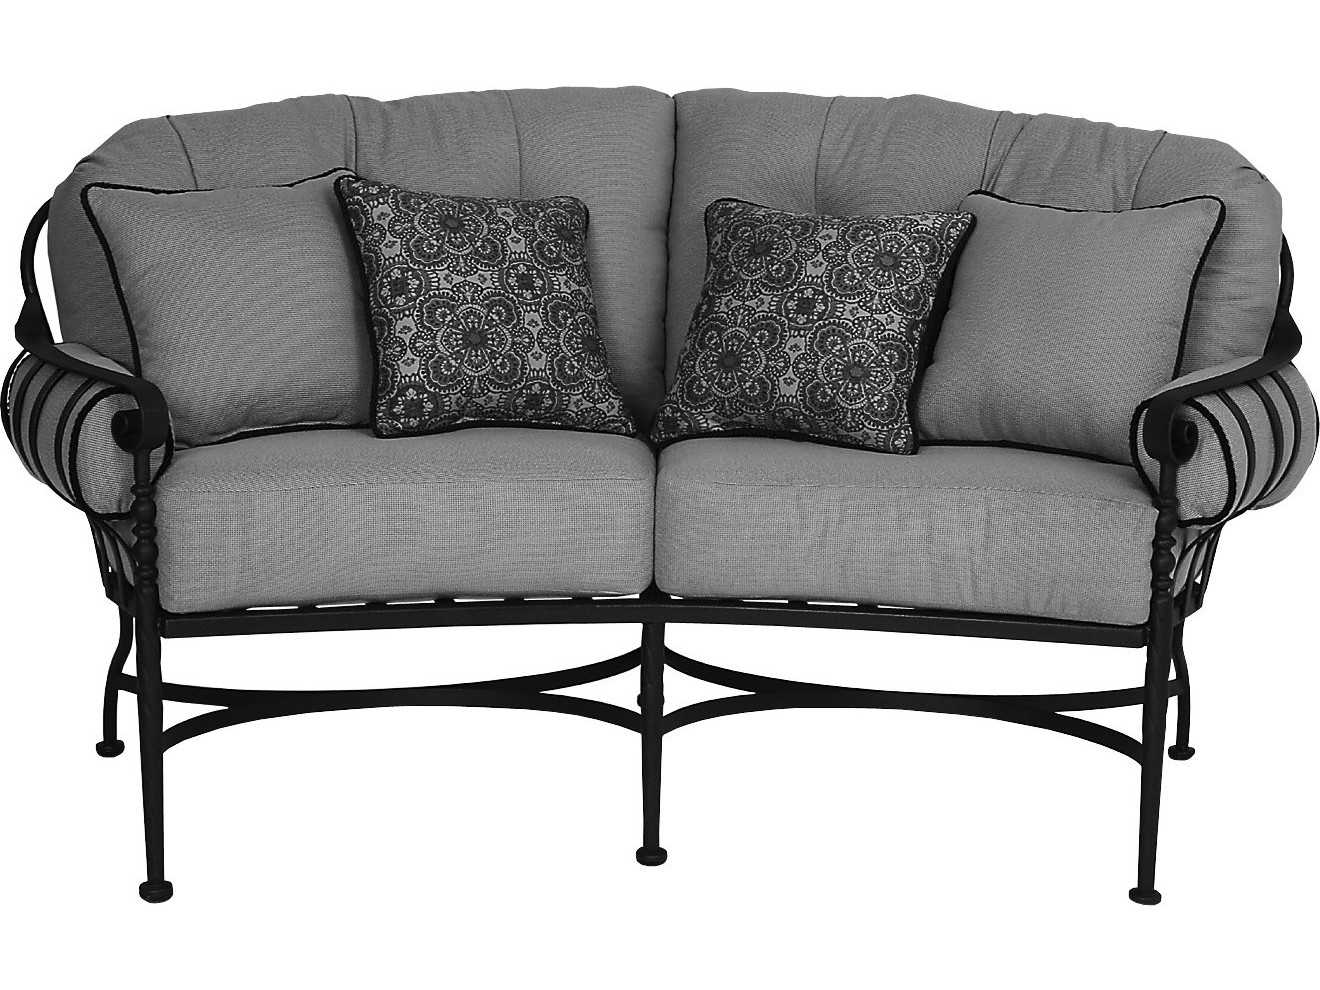 Meadowcraft Athens Wrought Iron Deep Seating Crecent Loveseat Md362100001